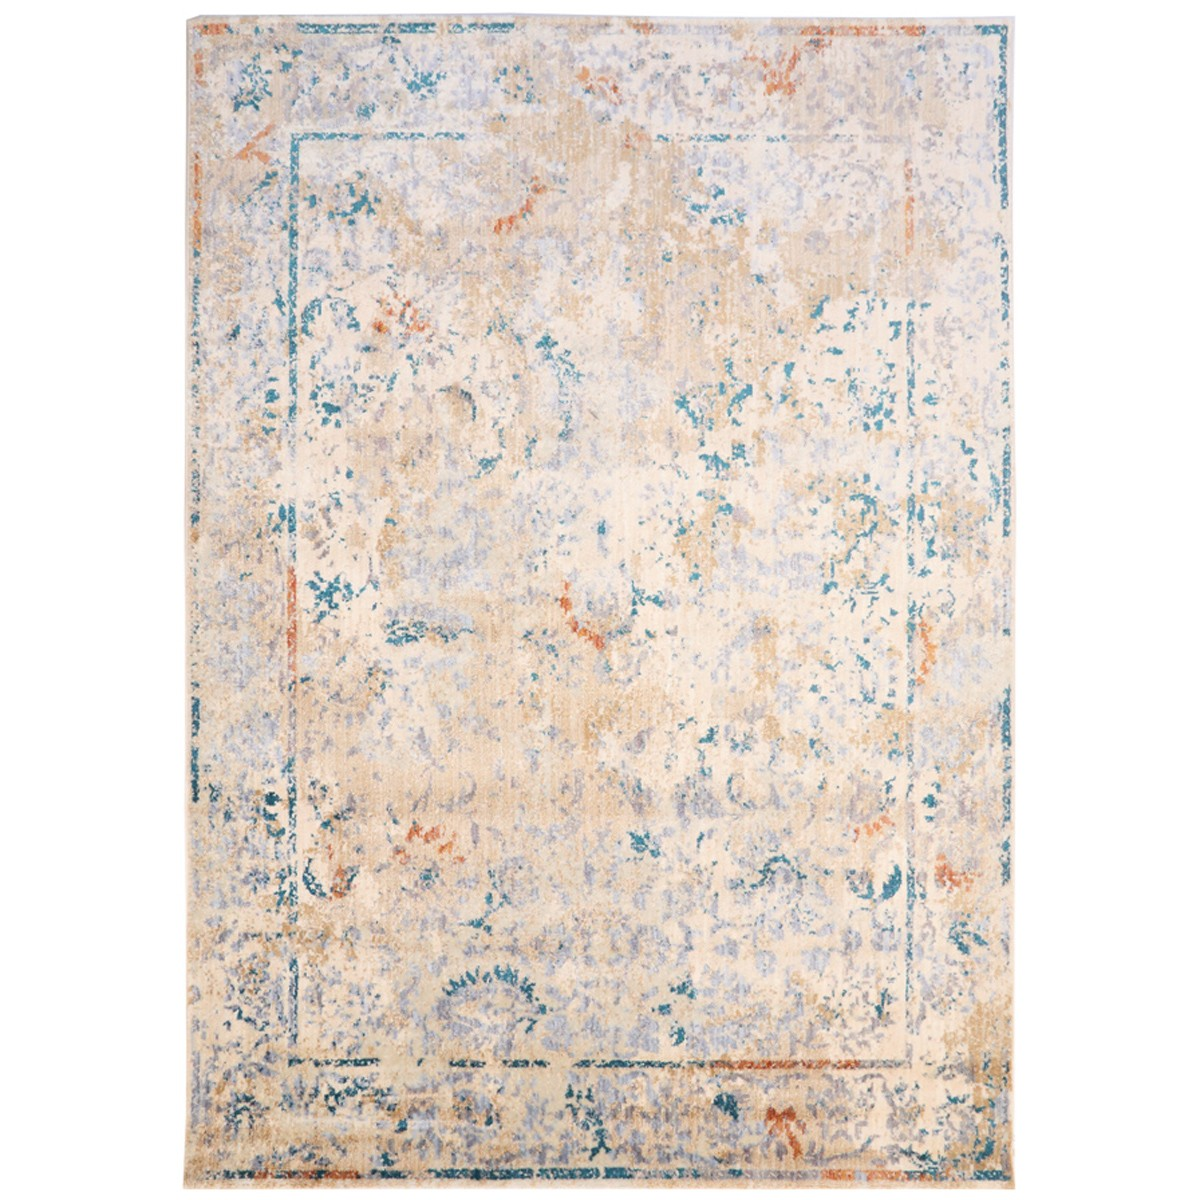 Χαλί (160x235) Royal Carpets Kiwi 70J